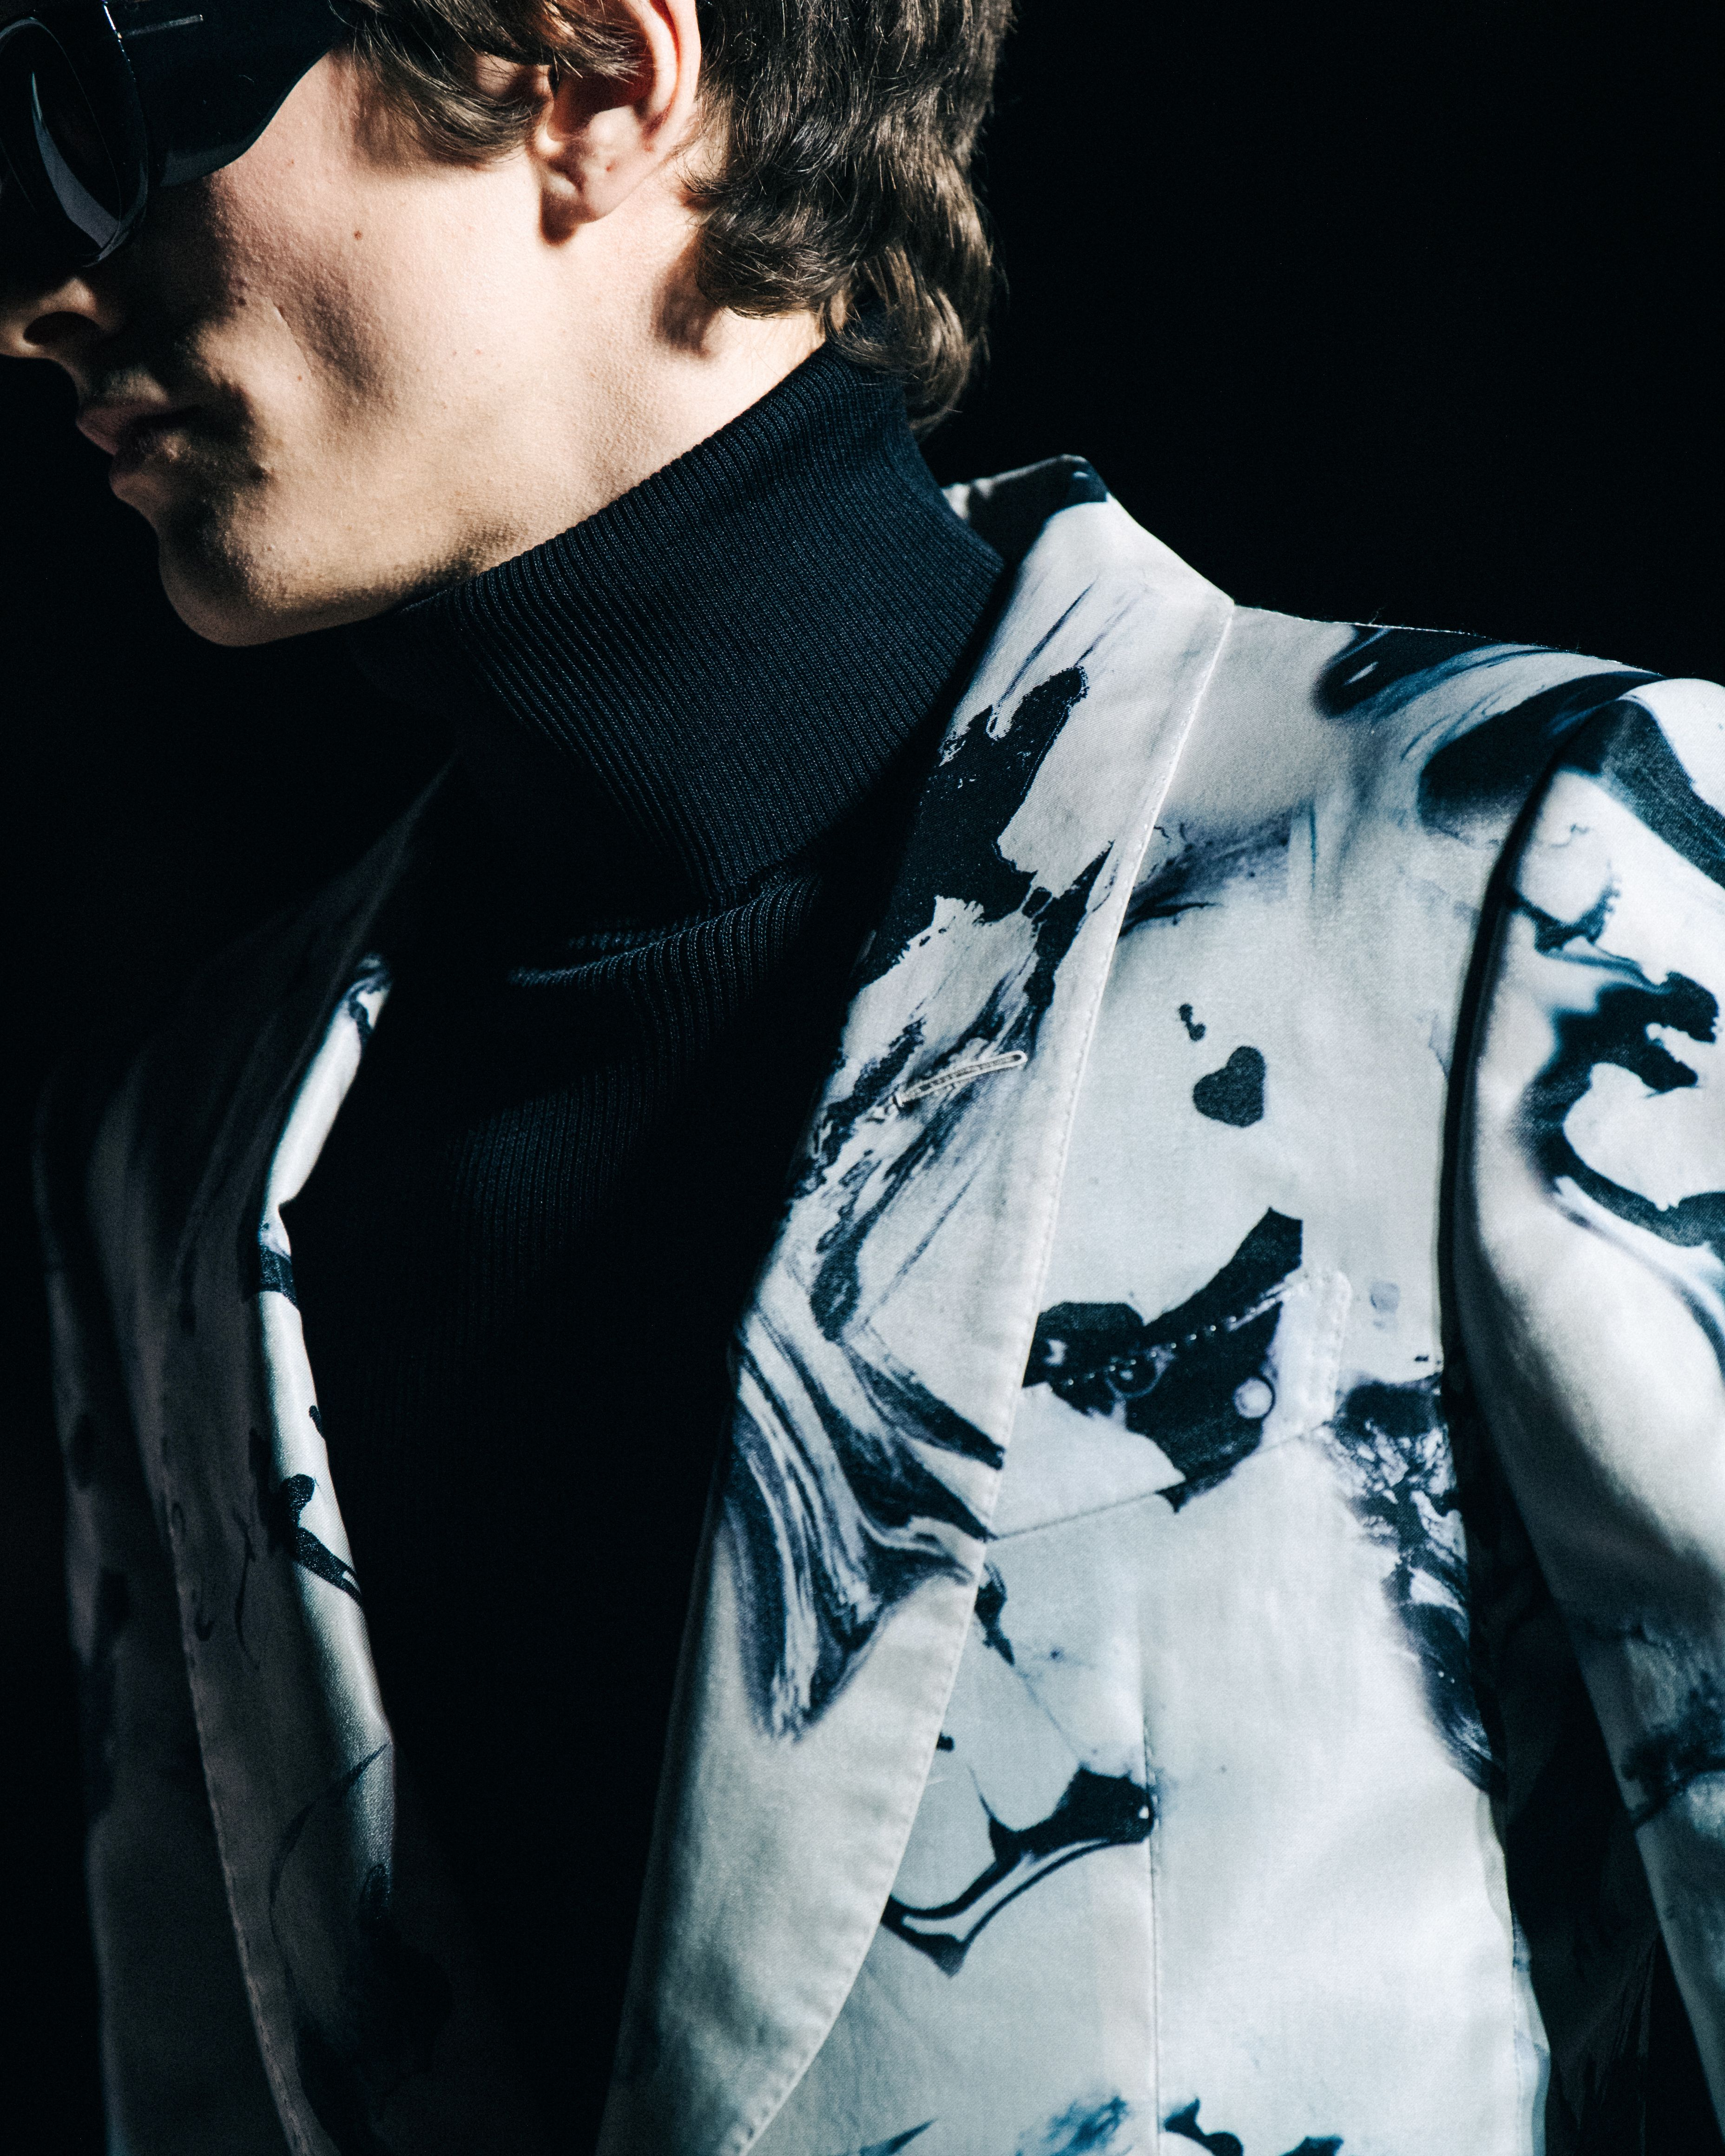 9495ab4a30e An iconic Men s evening look from the TOM FORD AW19 Show.  TOMFORD   TOMFORDAW19  NYFW